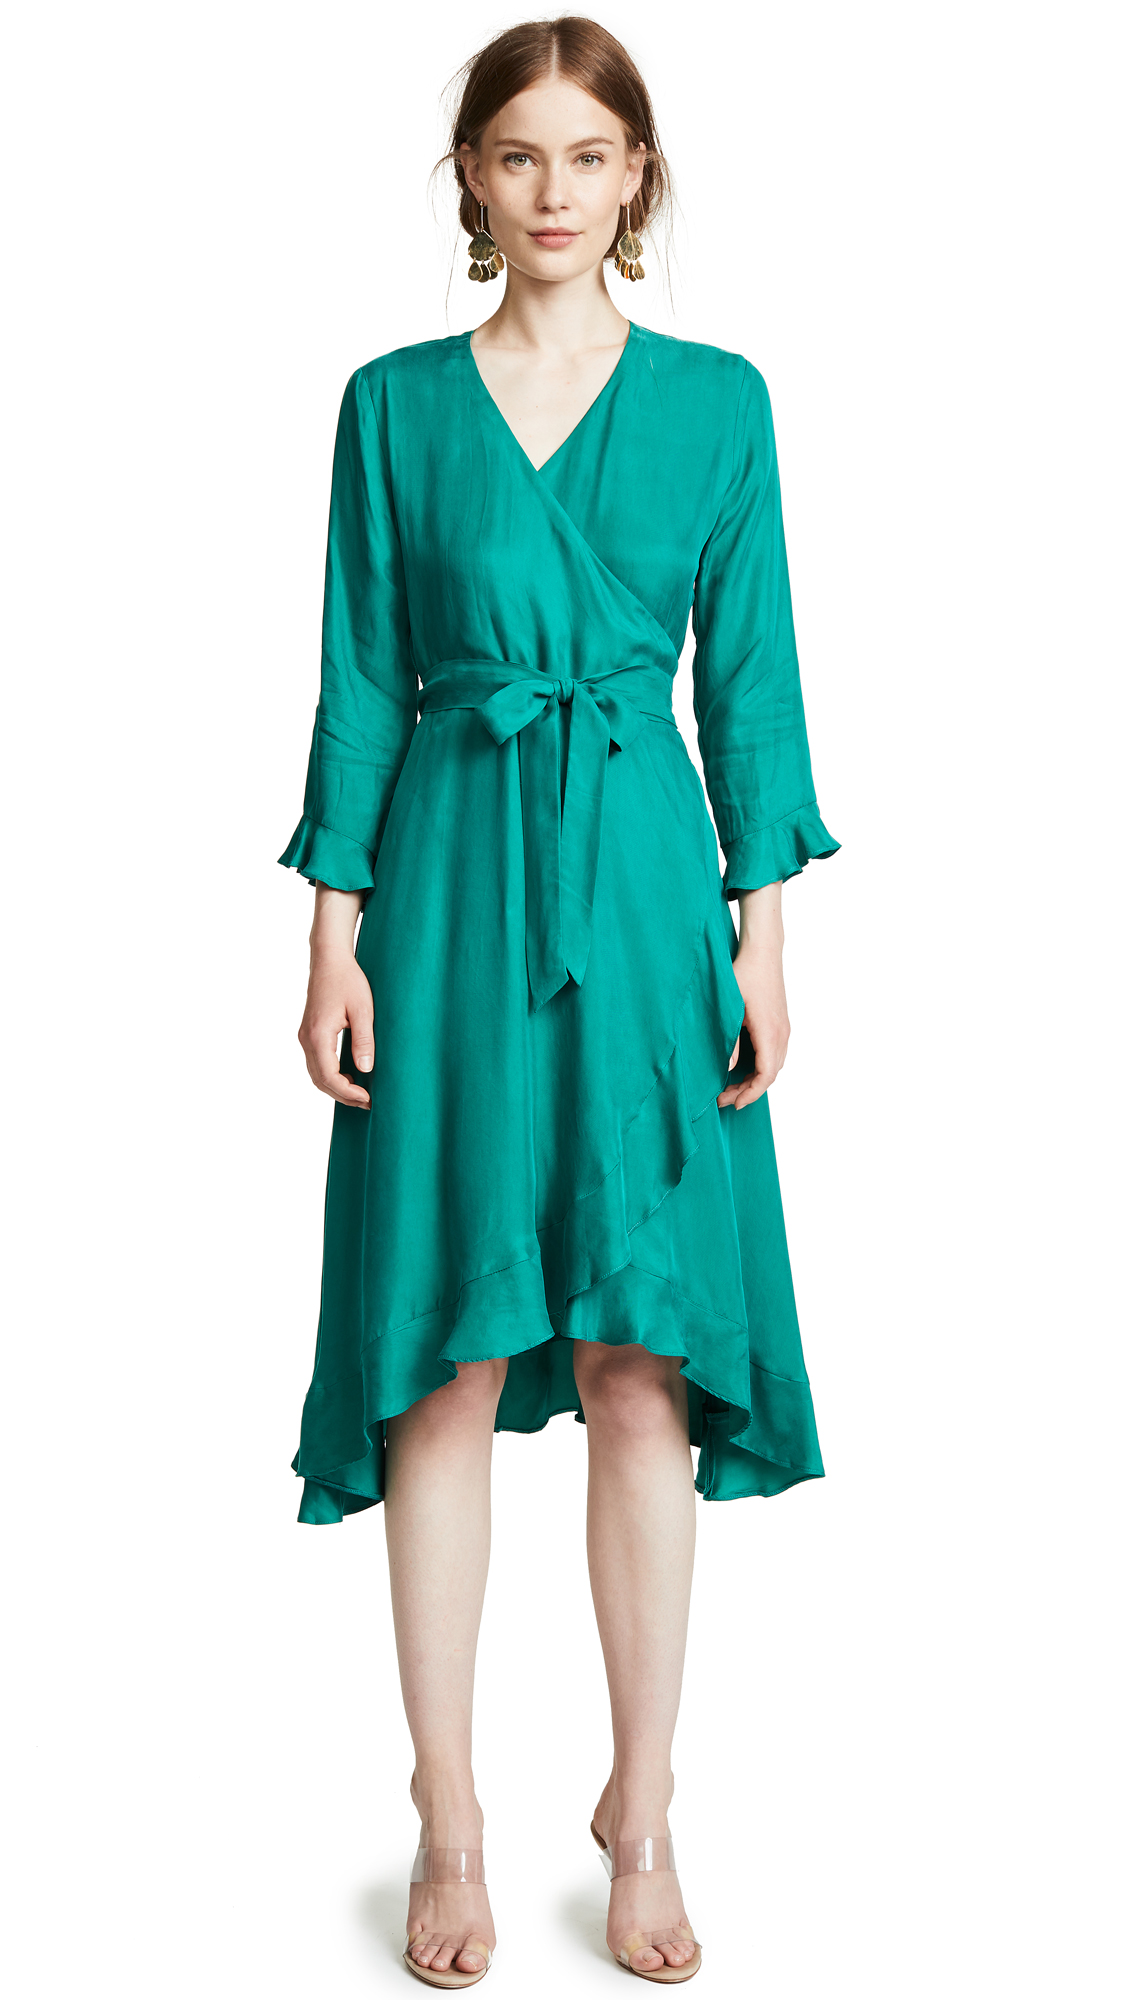 Suncoo Clarisse Robe Dress In Vert